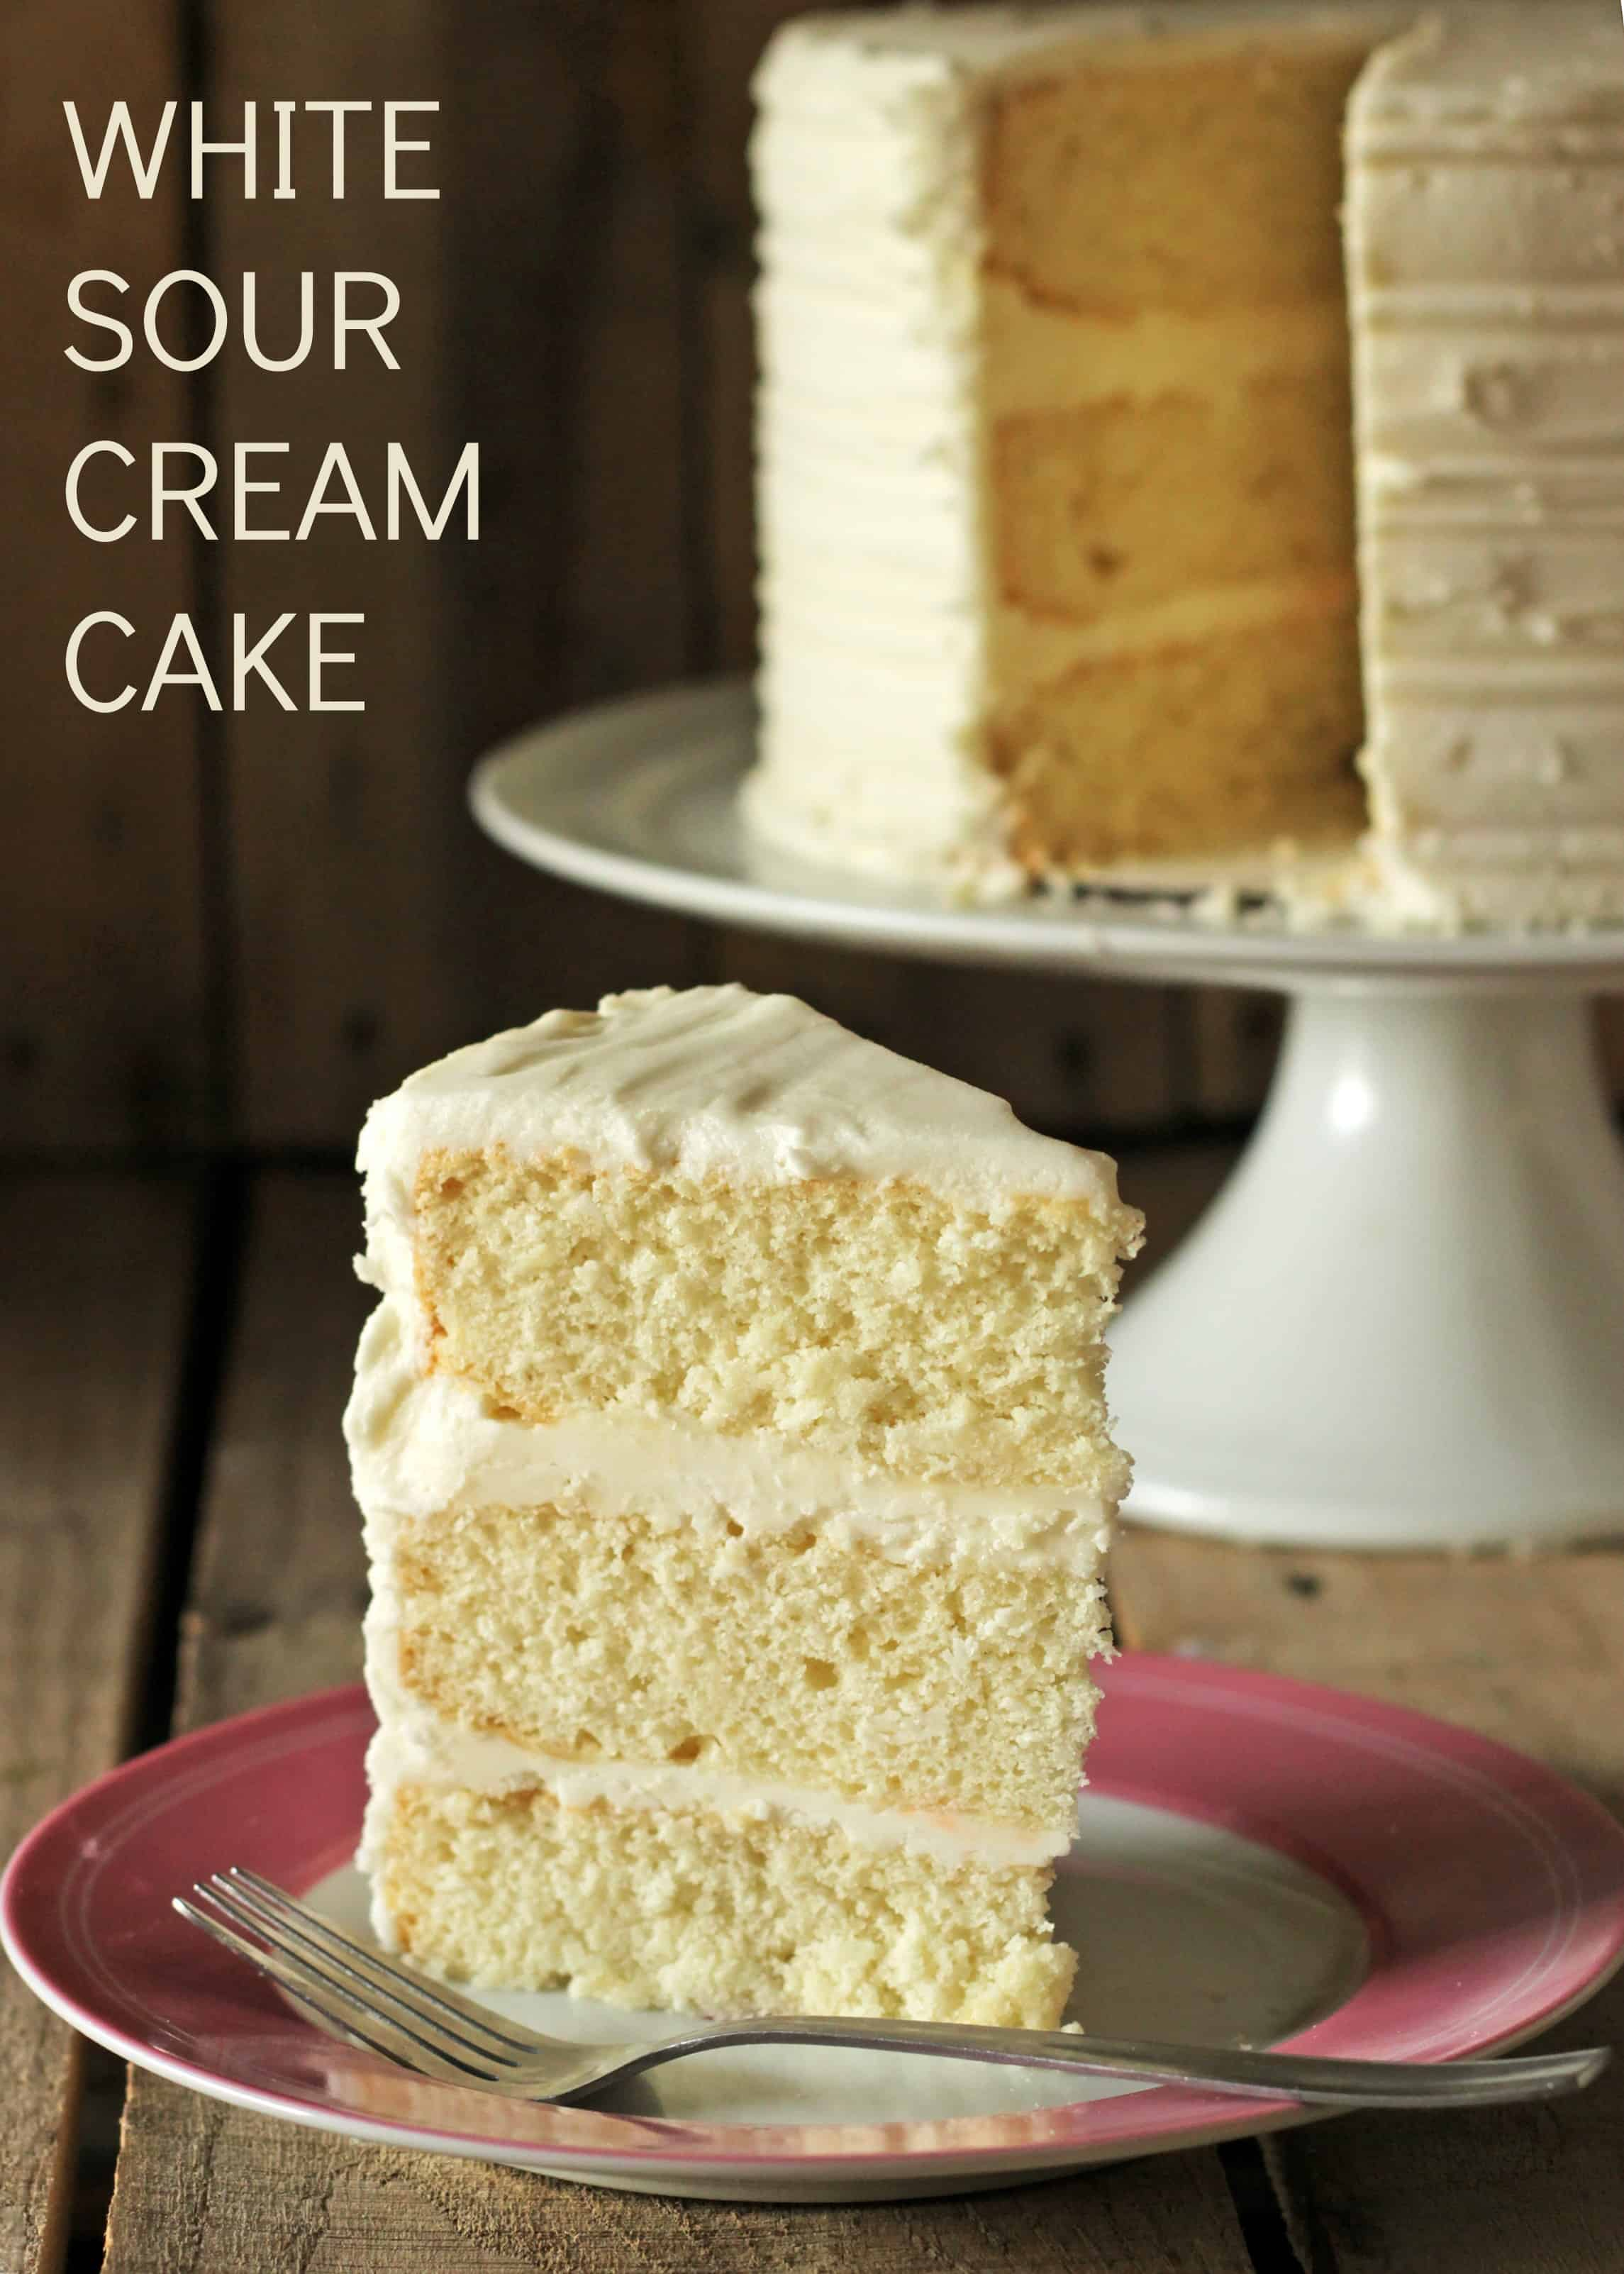 White Sour Cream Cake Recipe